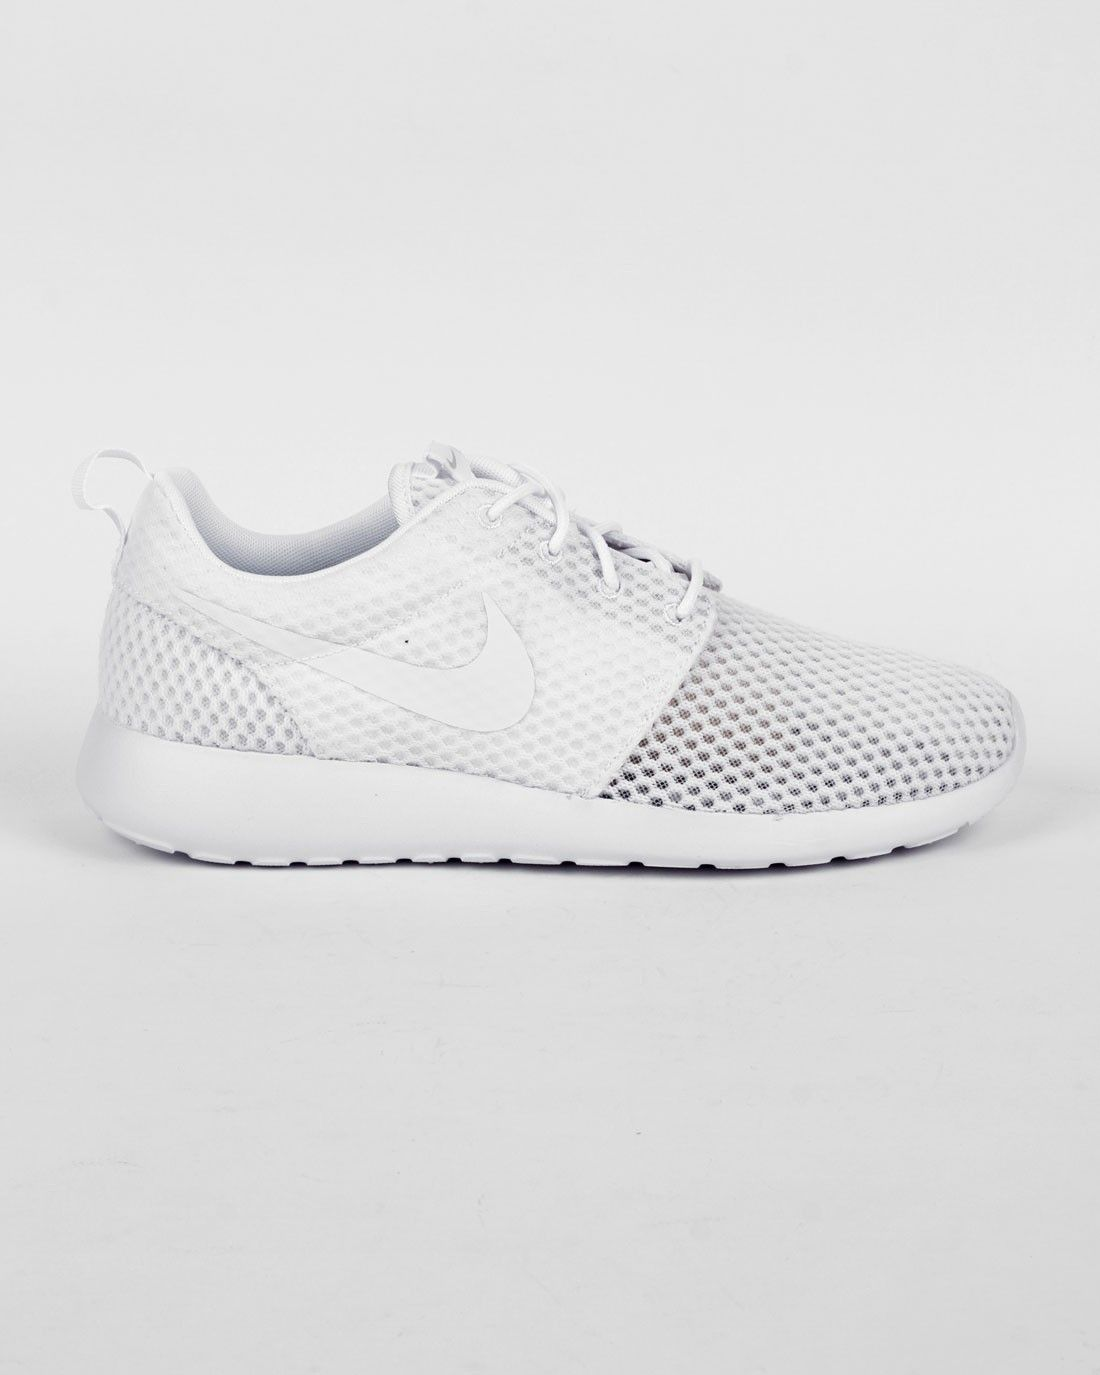 Nike Roshe One BR (Breeze)